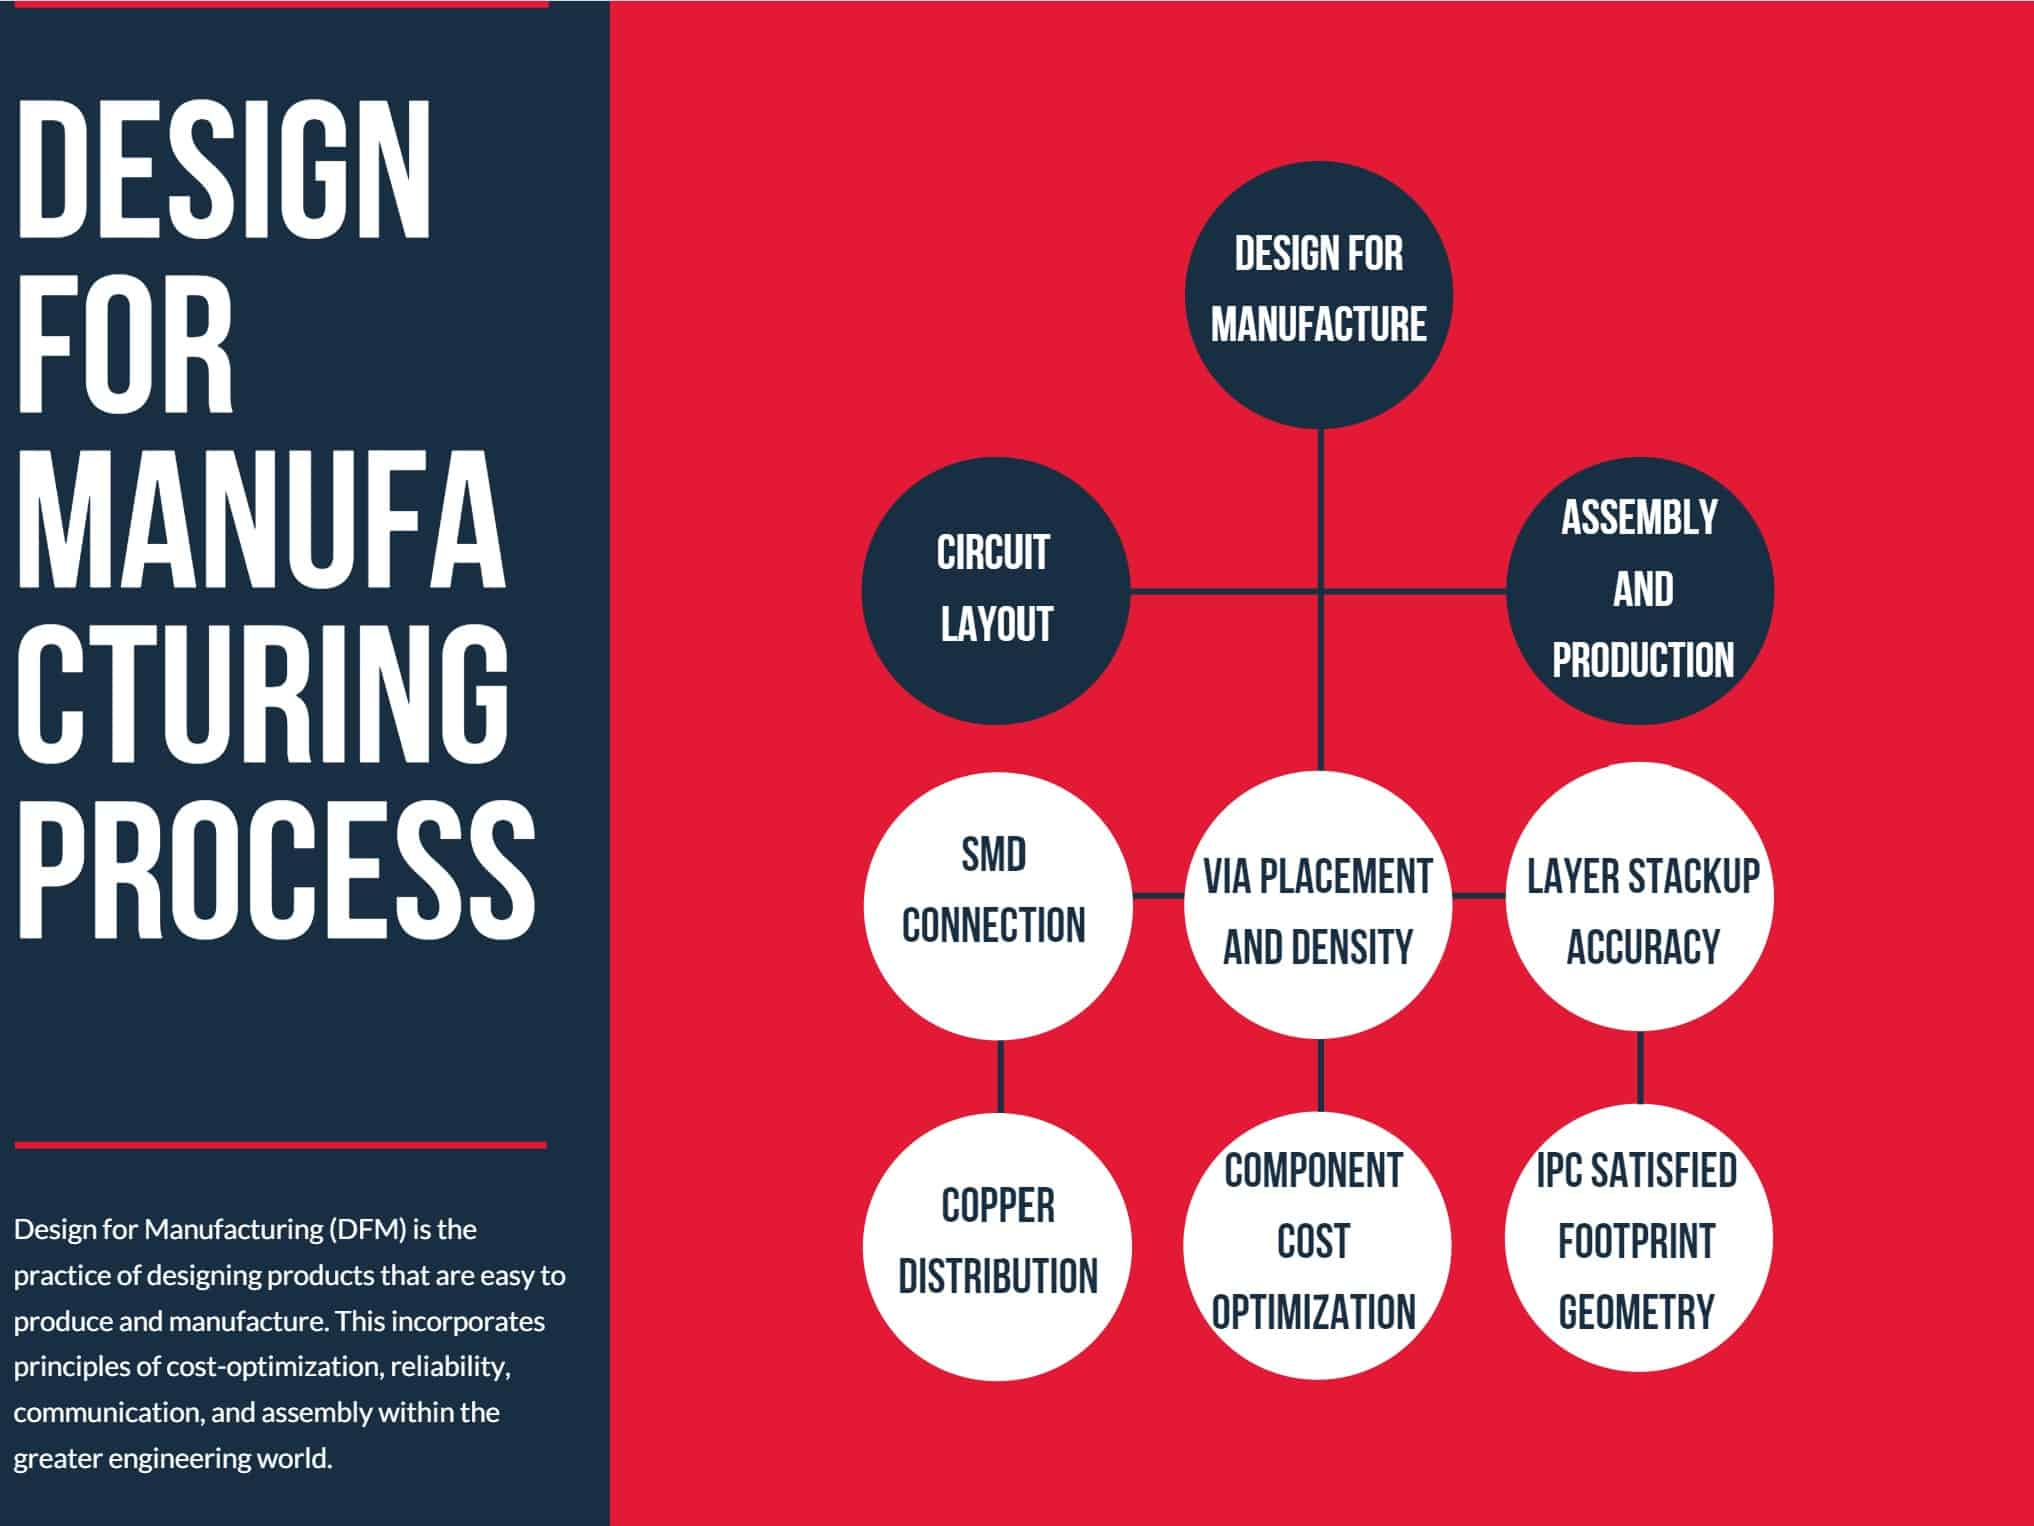 Design for manufacturing process